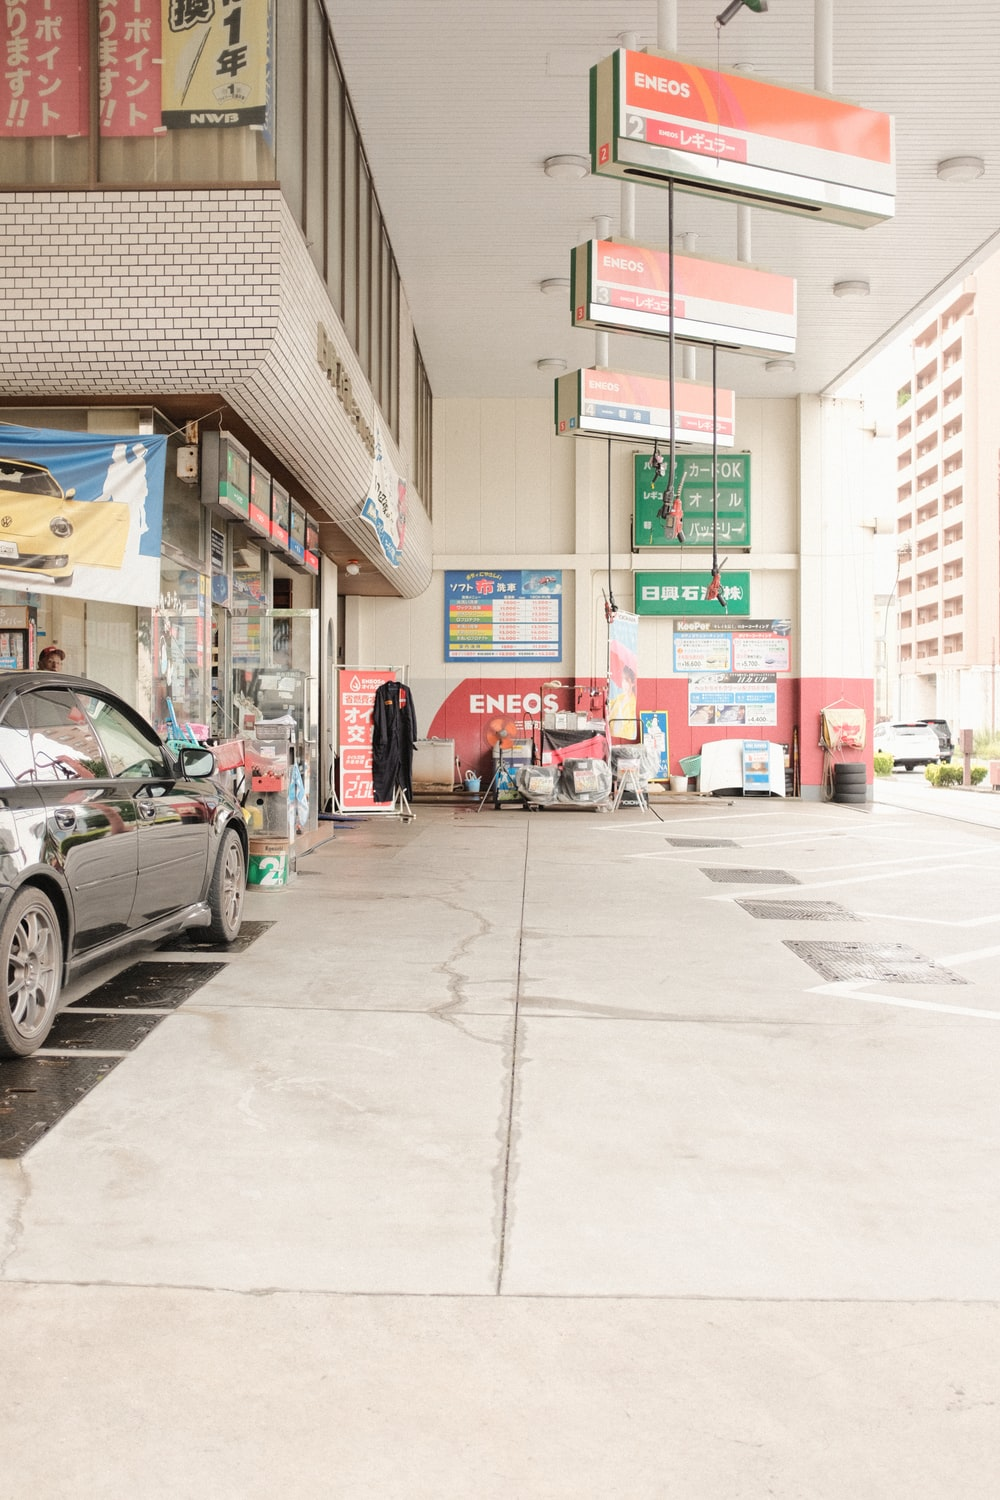 cars parked in front of store during daytime